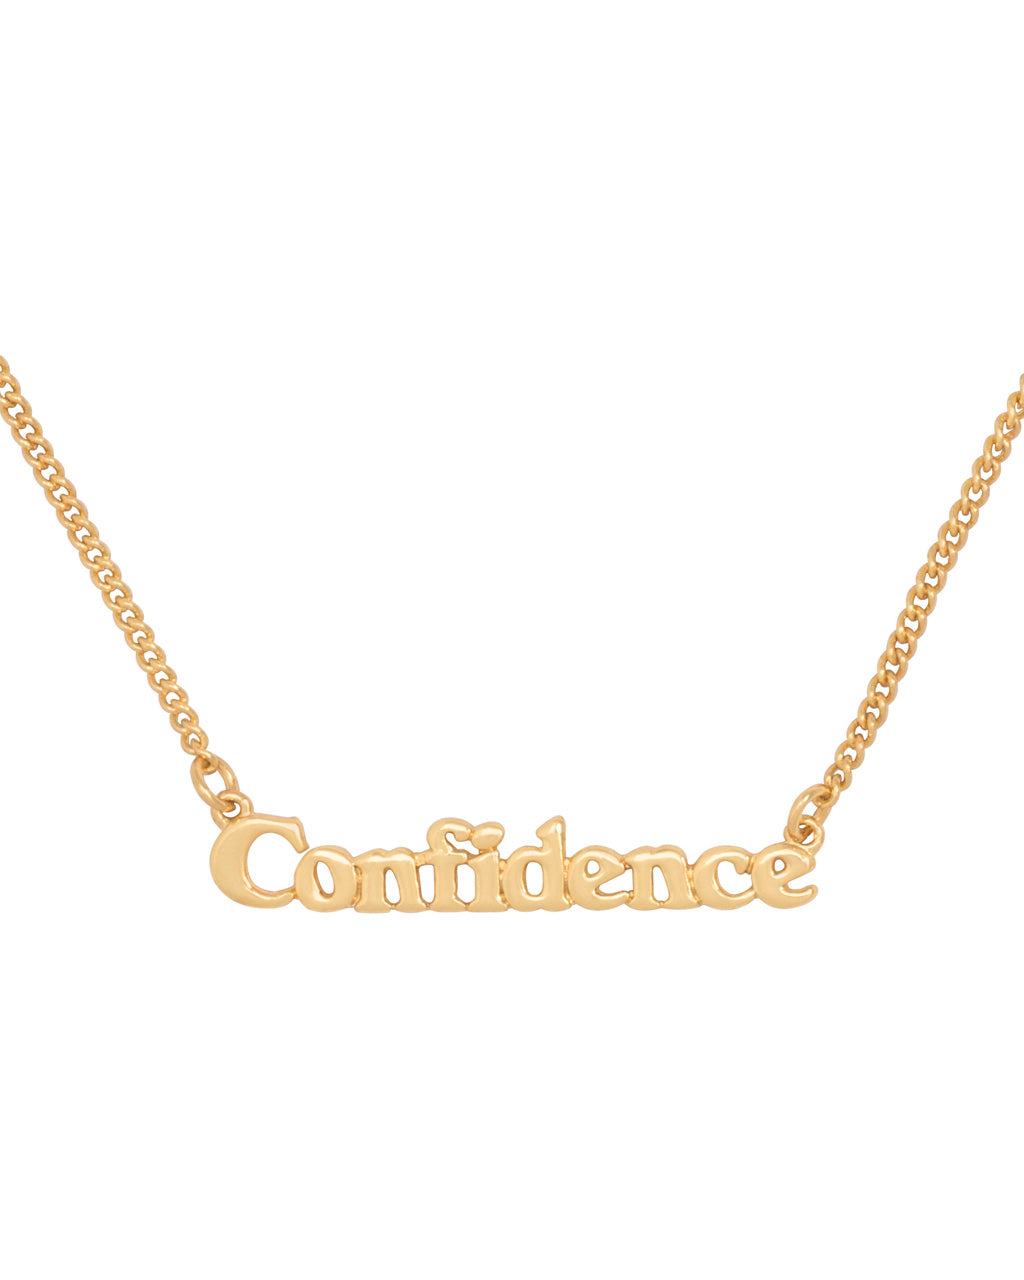 gold chain necklace with the word confidence in 3d letters